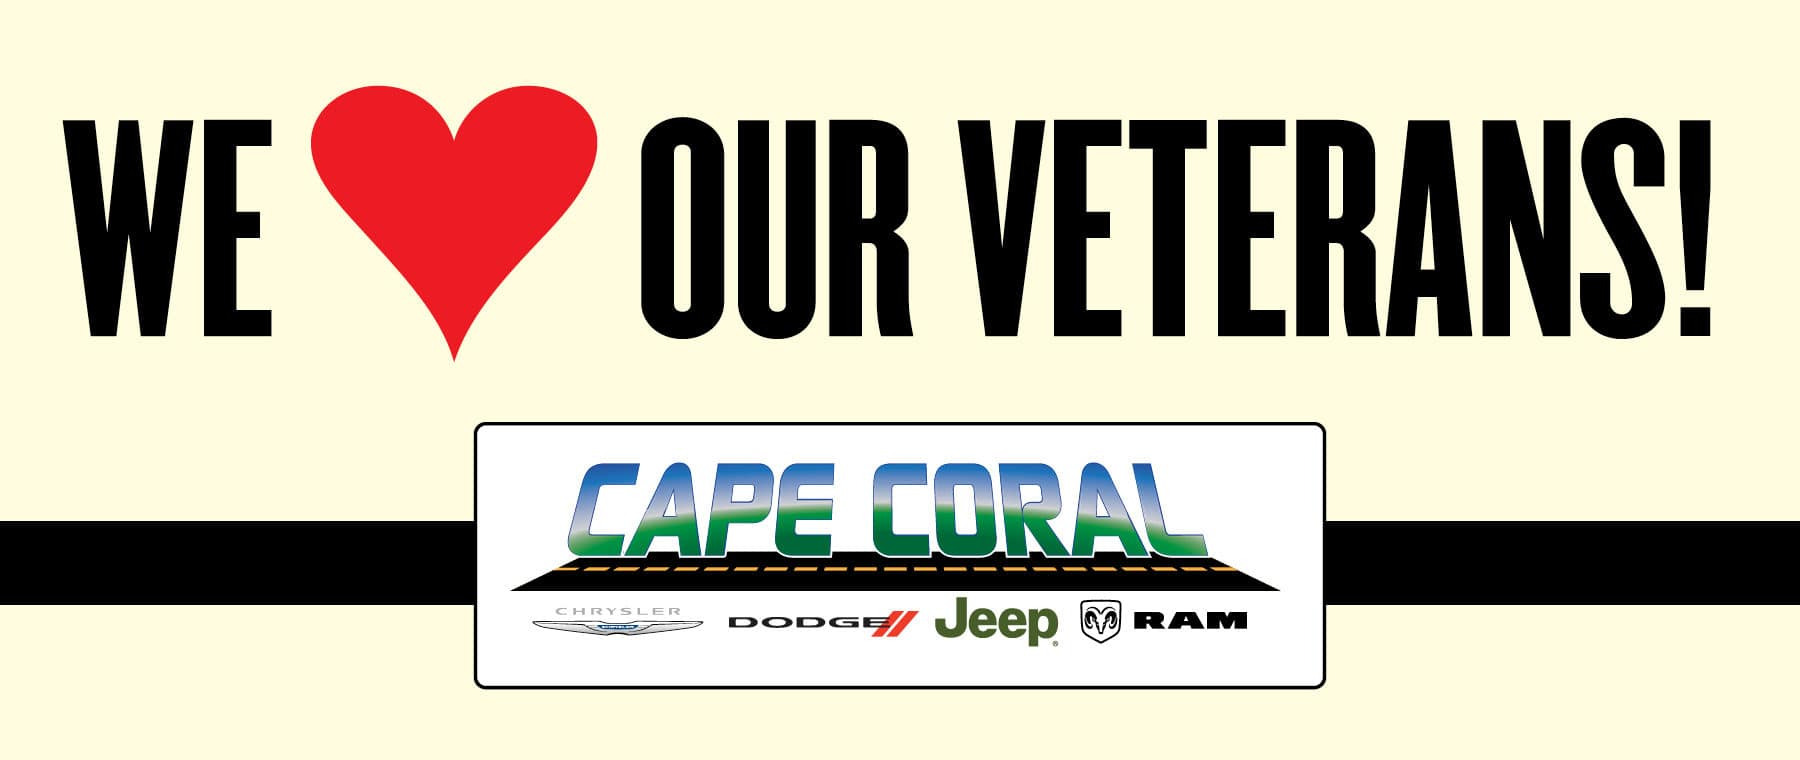 We Love Our Veterans!